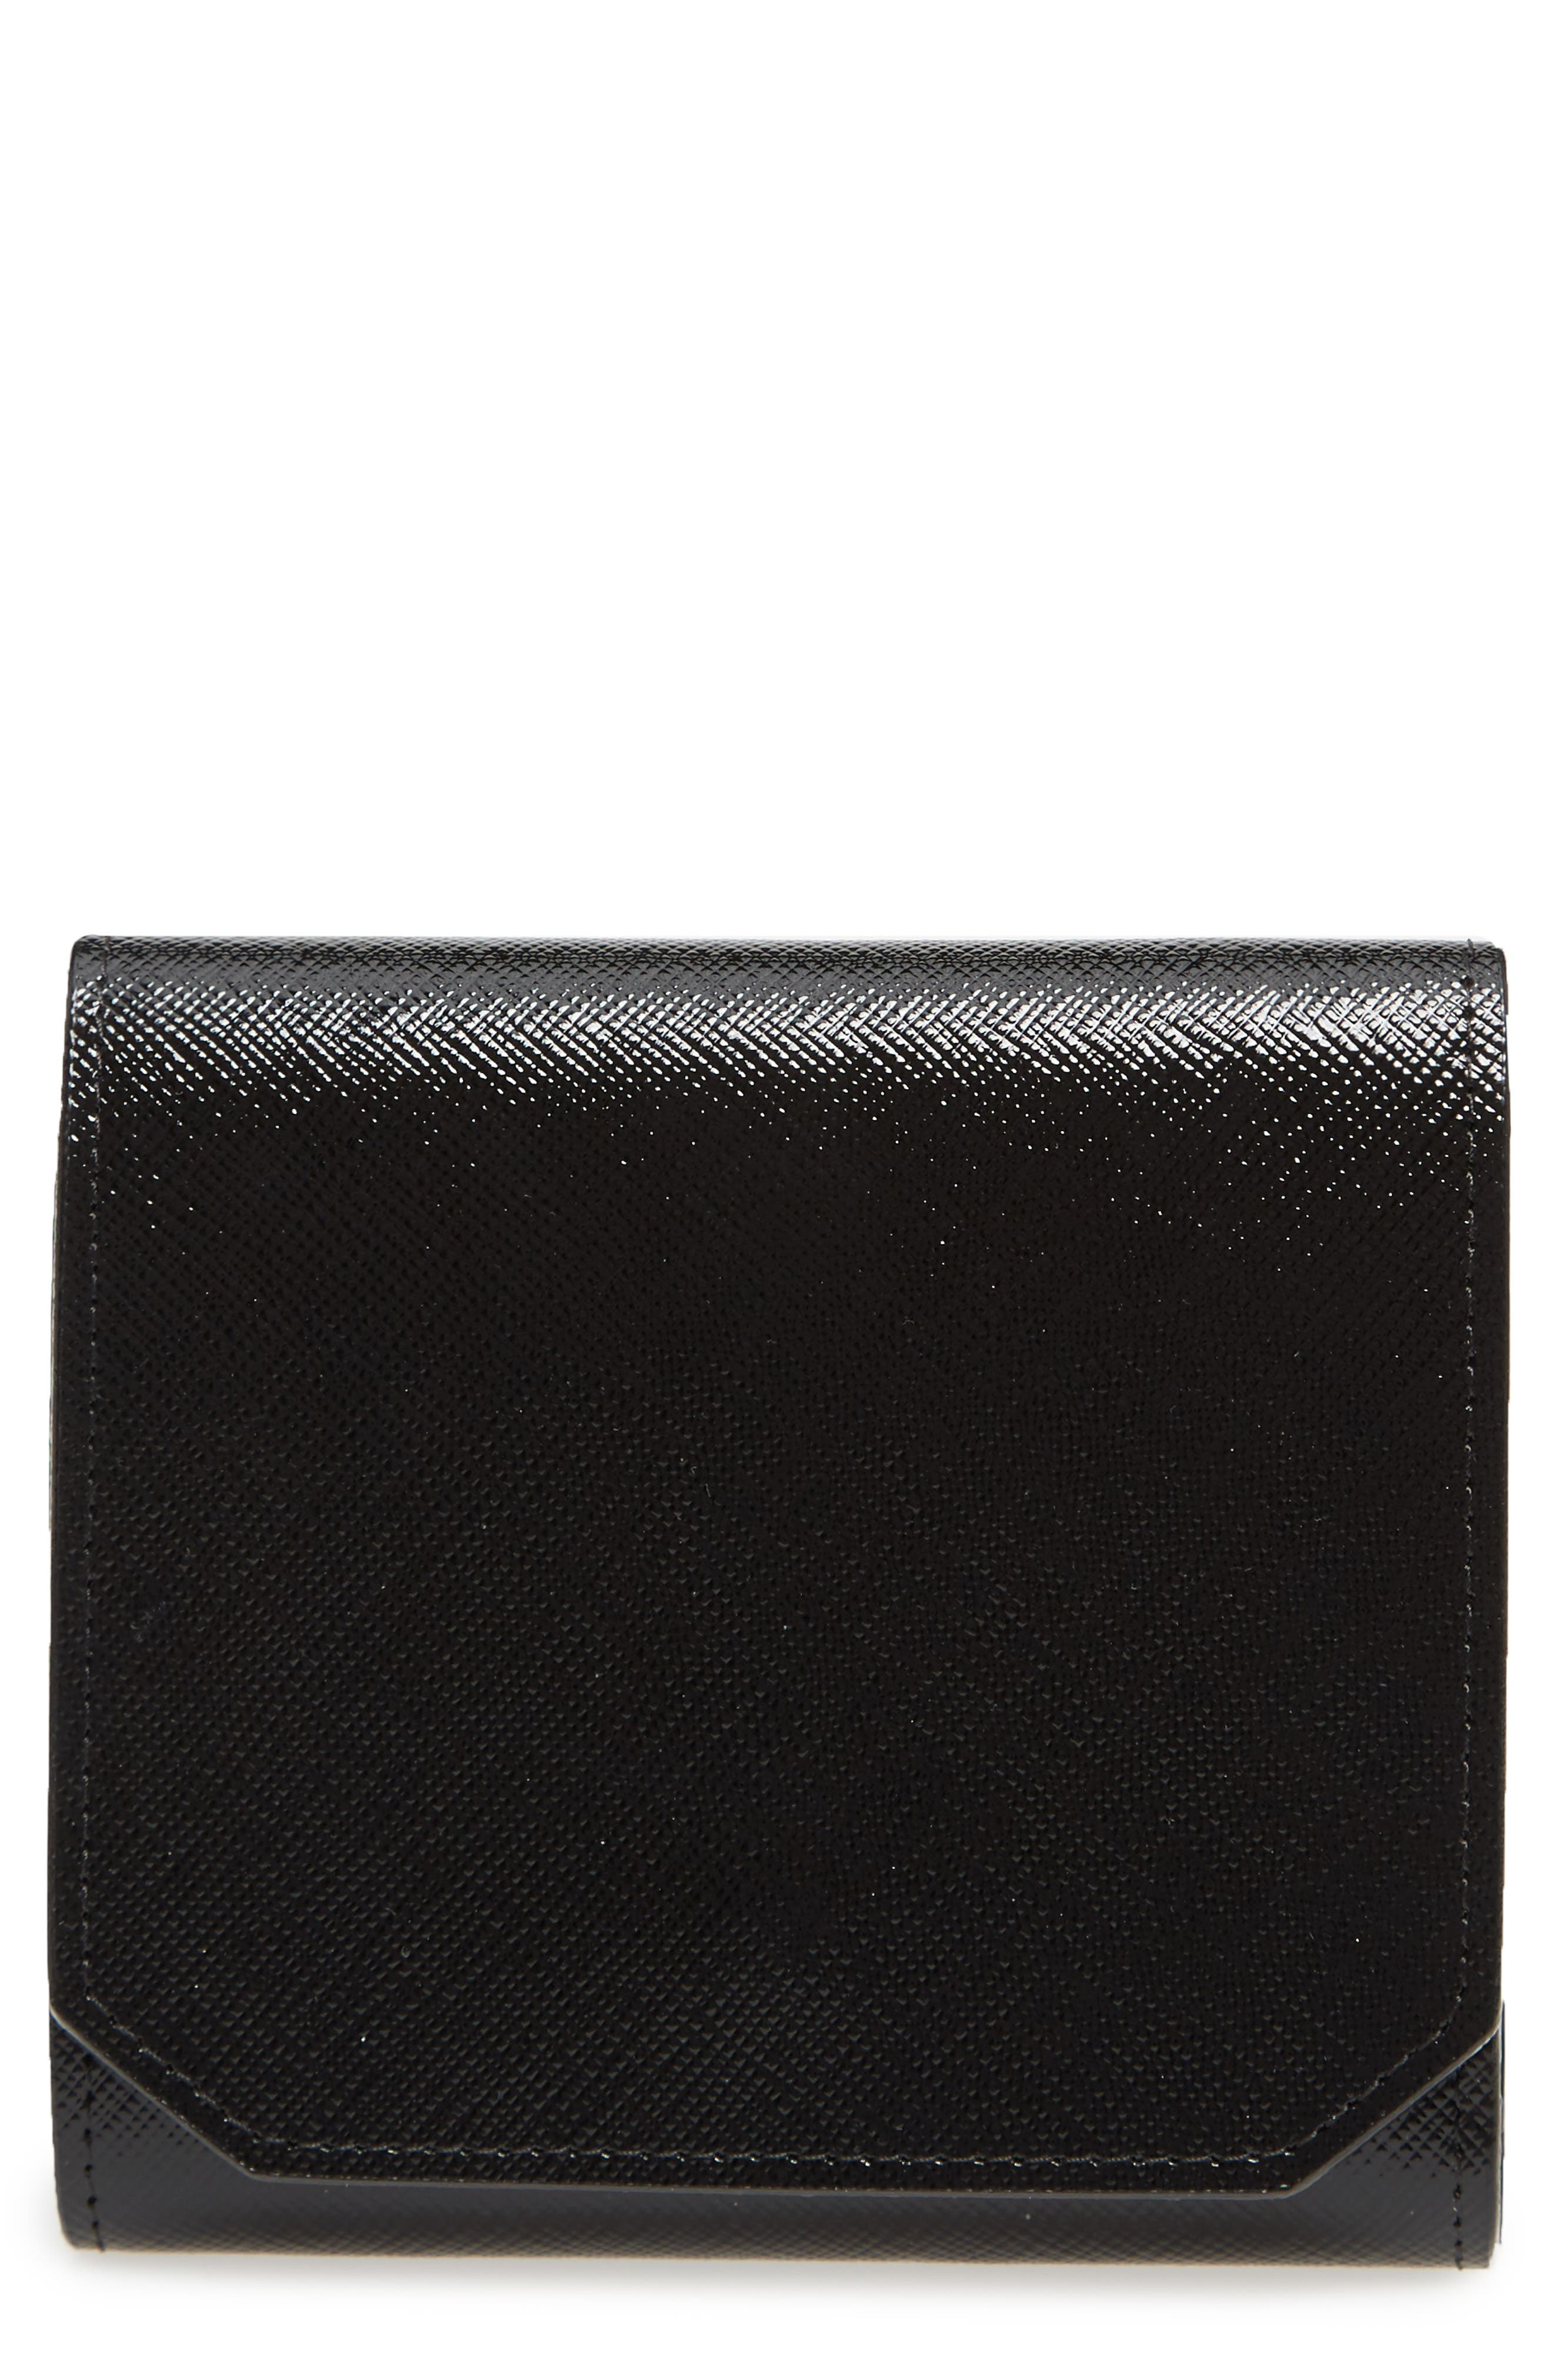 Trifold Leather Envelope Wallet,                         Main,                         color, 001